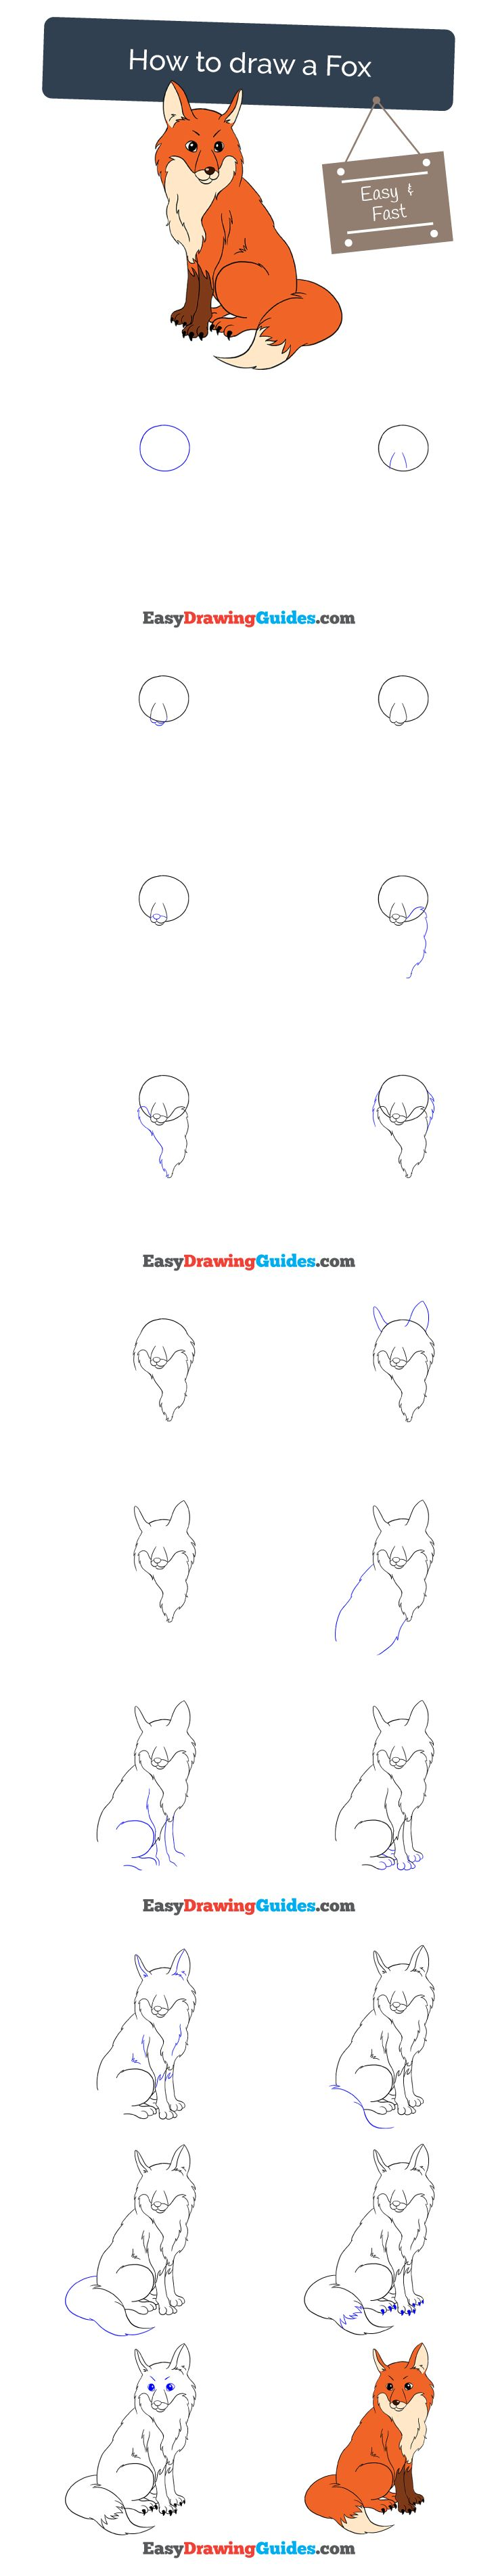 how to draw a fox step by step easy